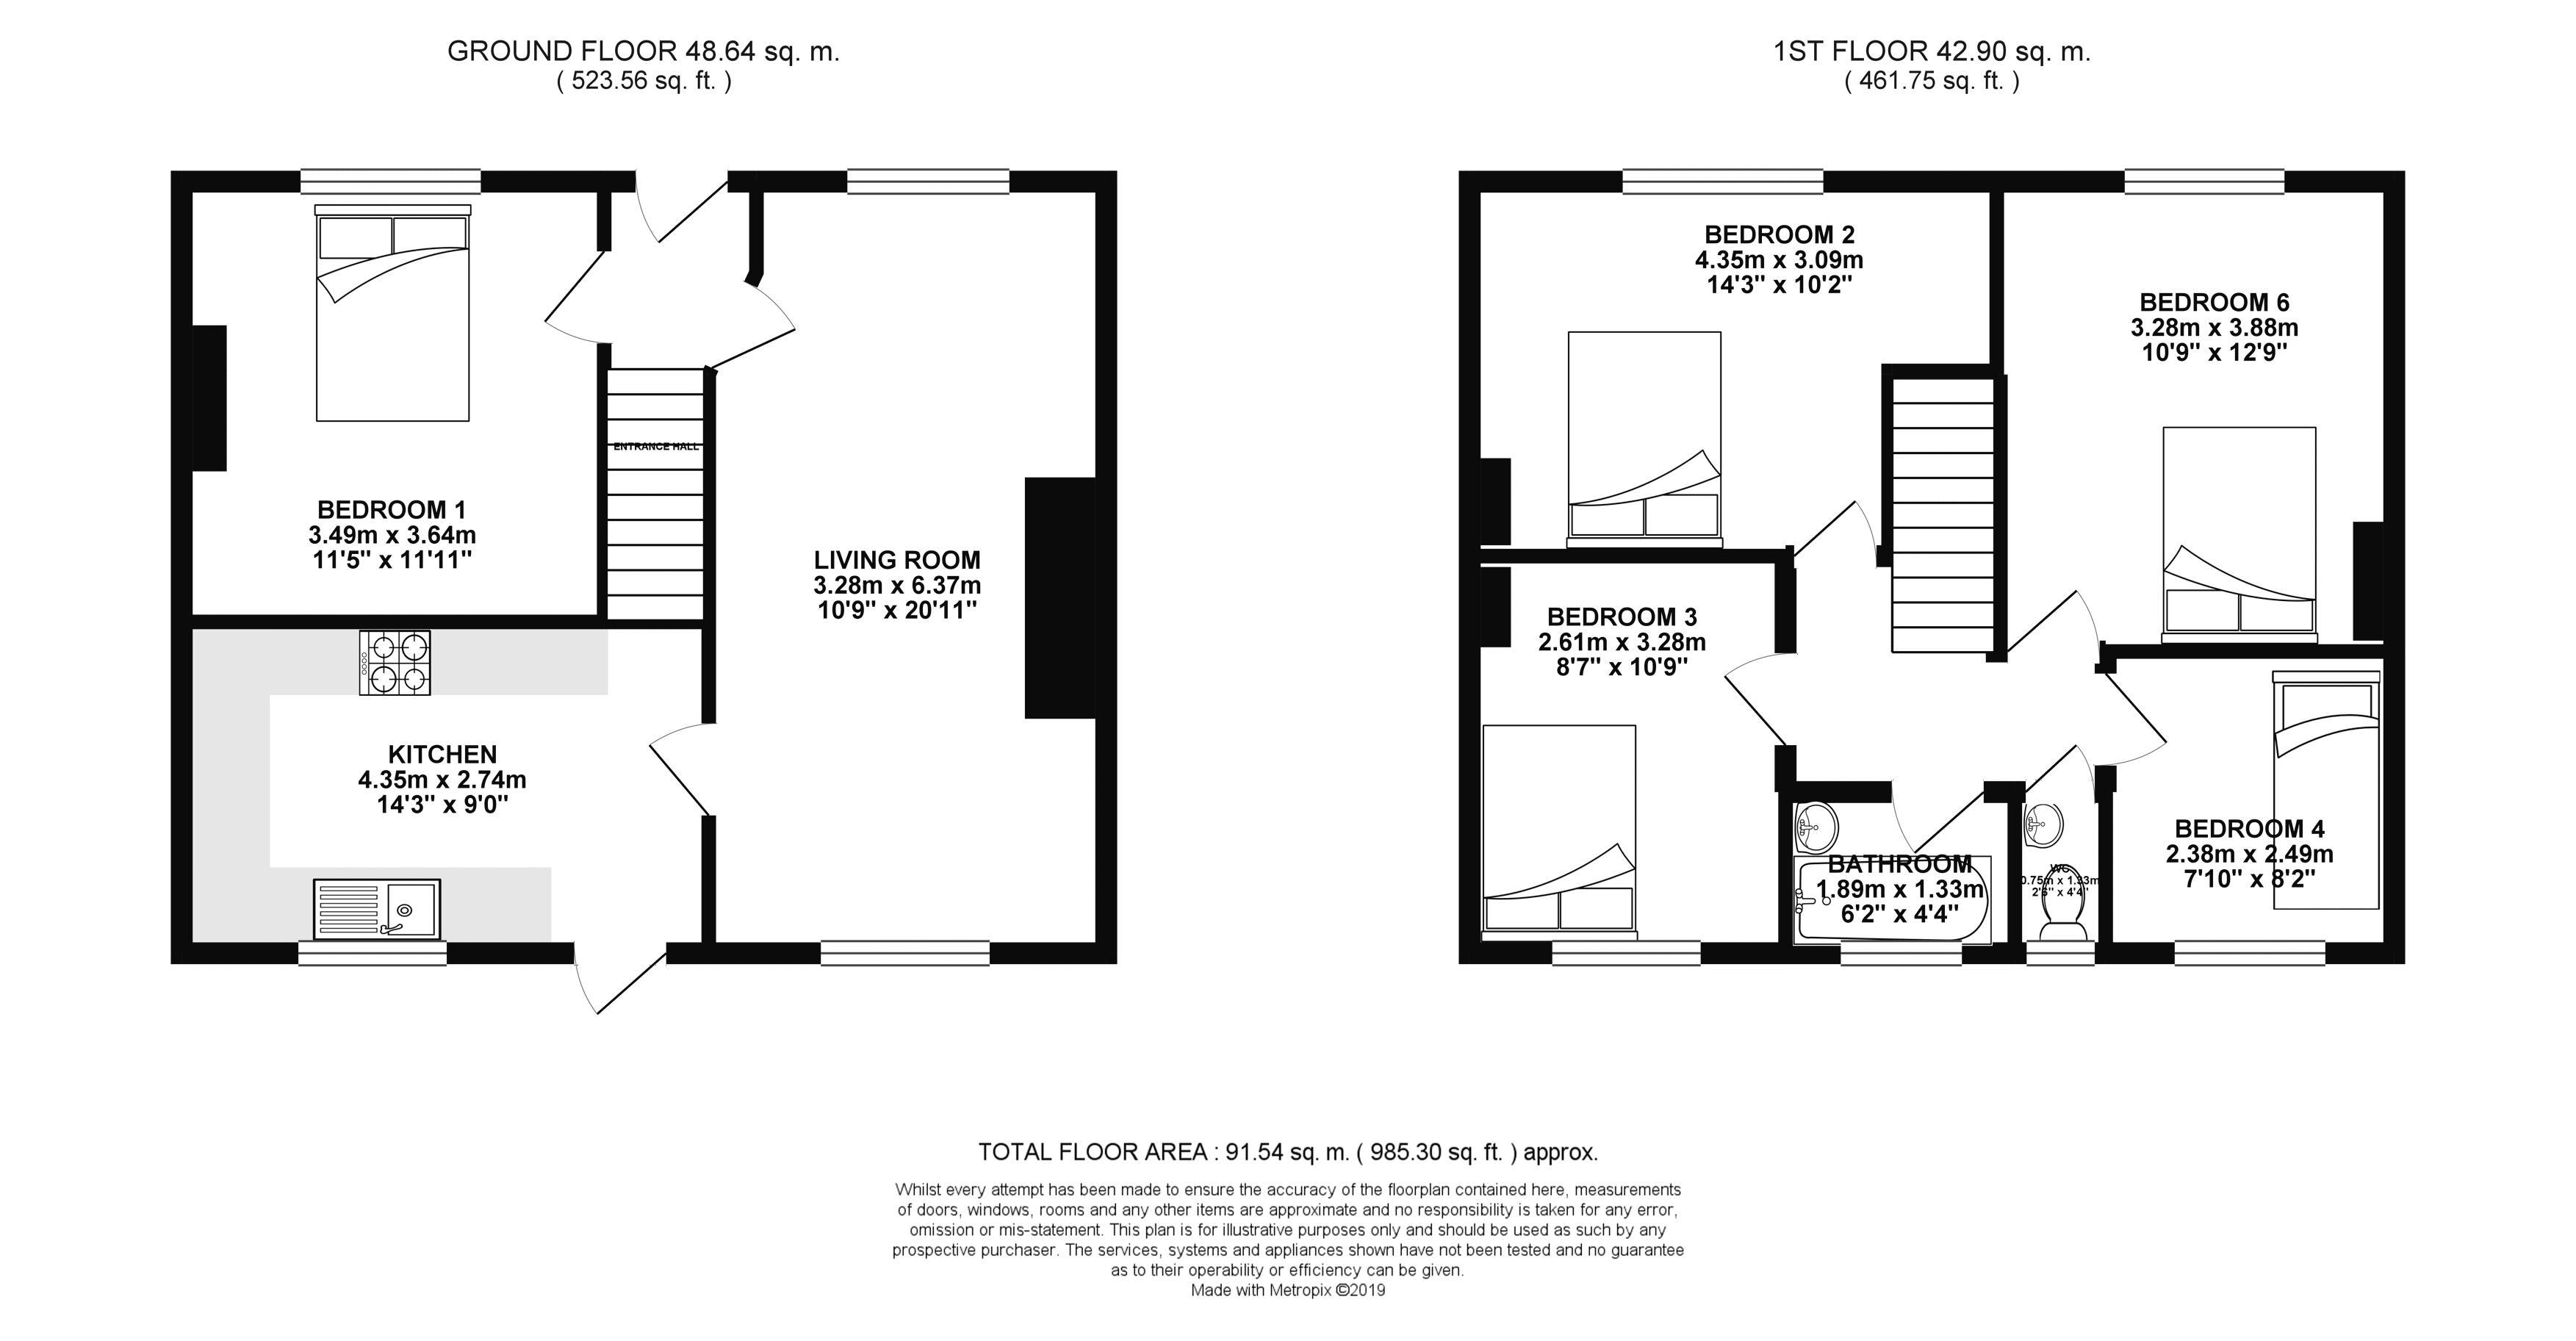 Floor plans for Southall Avenue, Brighton property for sale in Bevendean, Brighton by Coapt